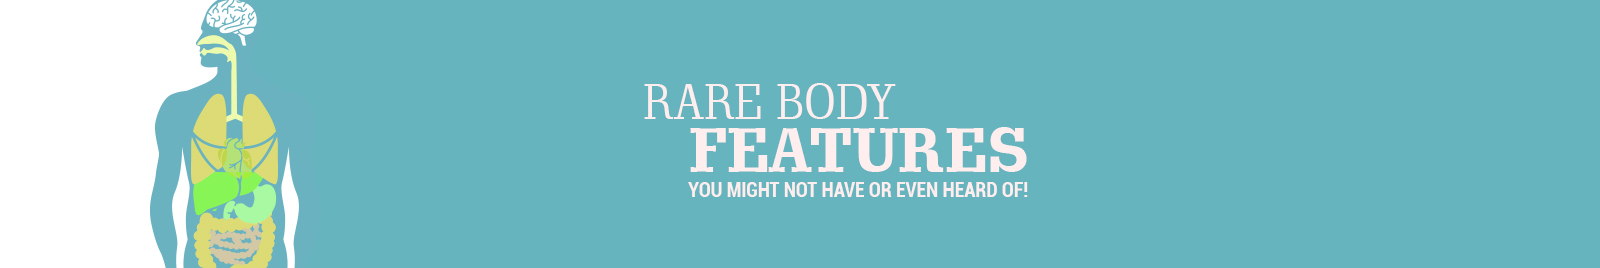 RARE BODY FEATURES YOU MIGHT NOT HAVE OR EVEN HEARD OF!